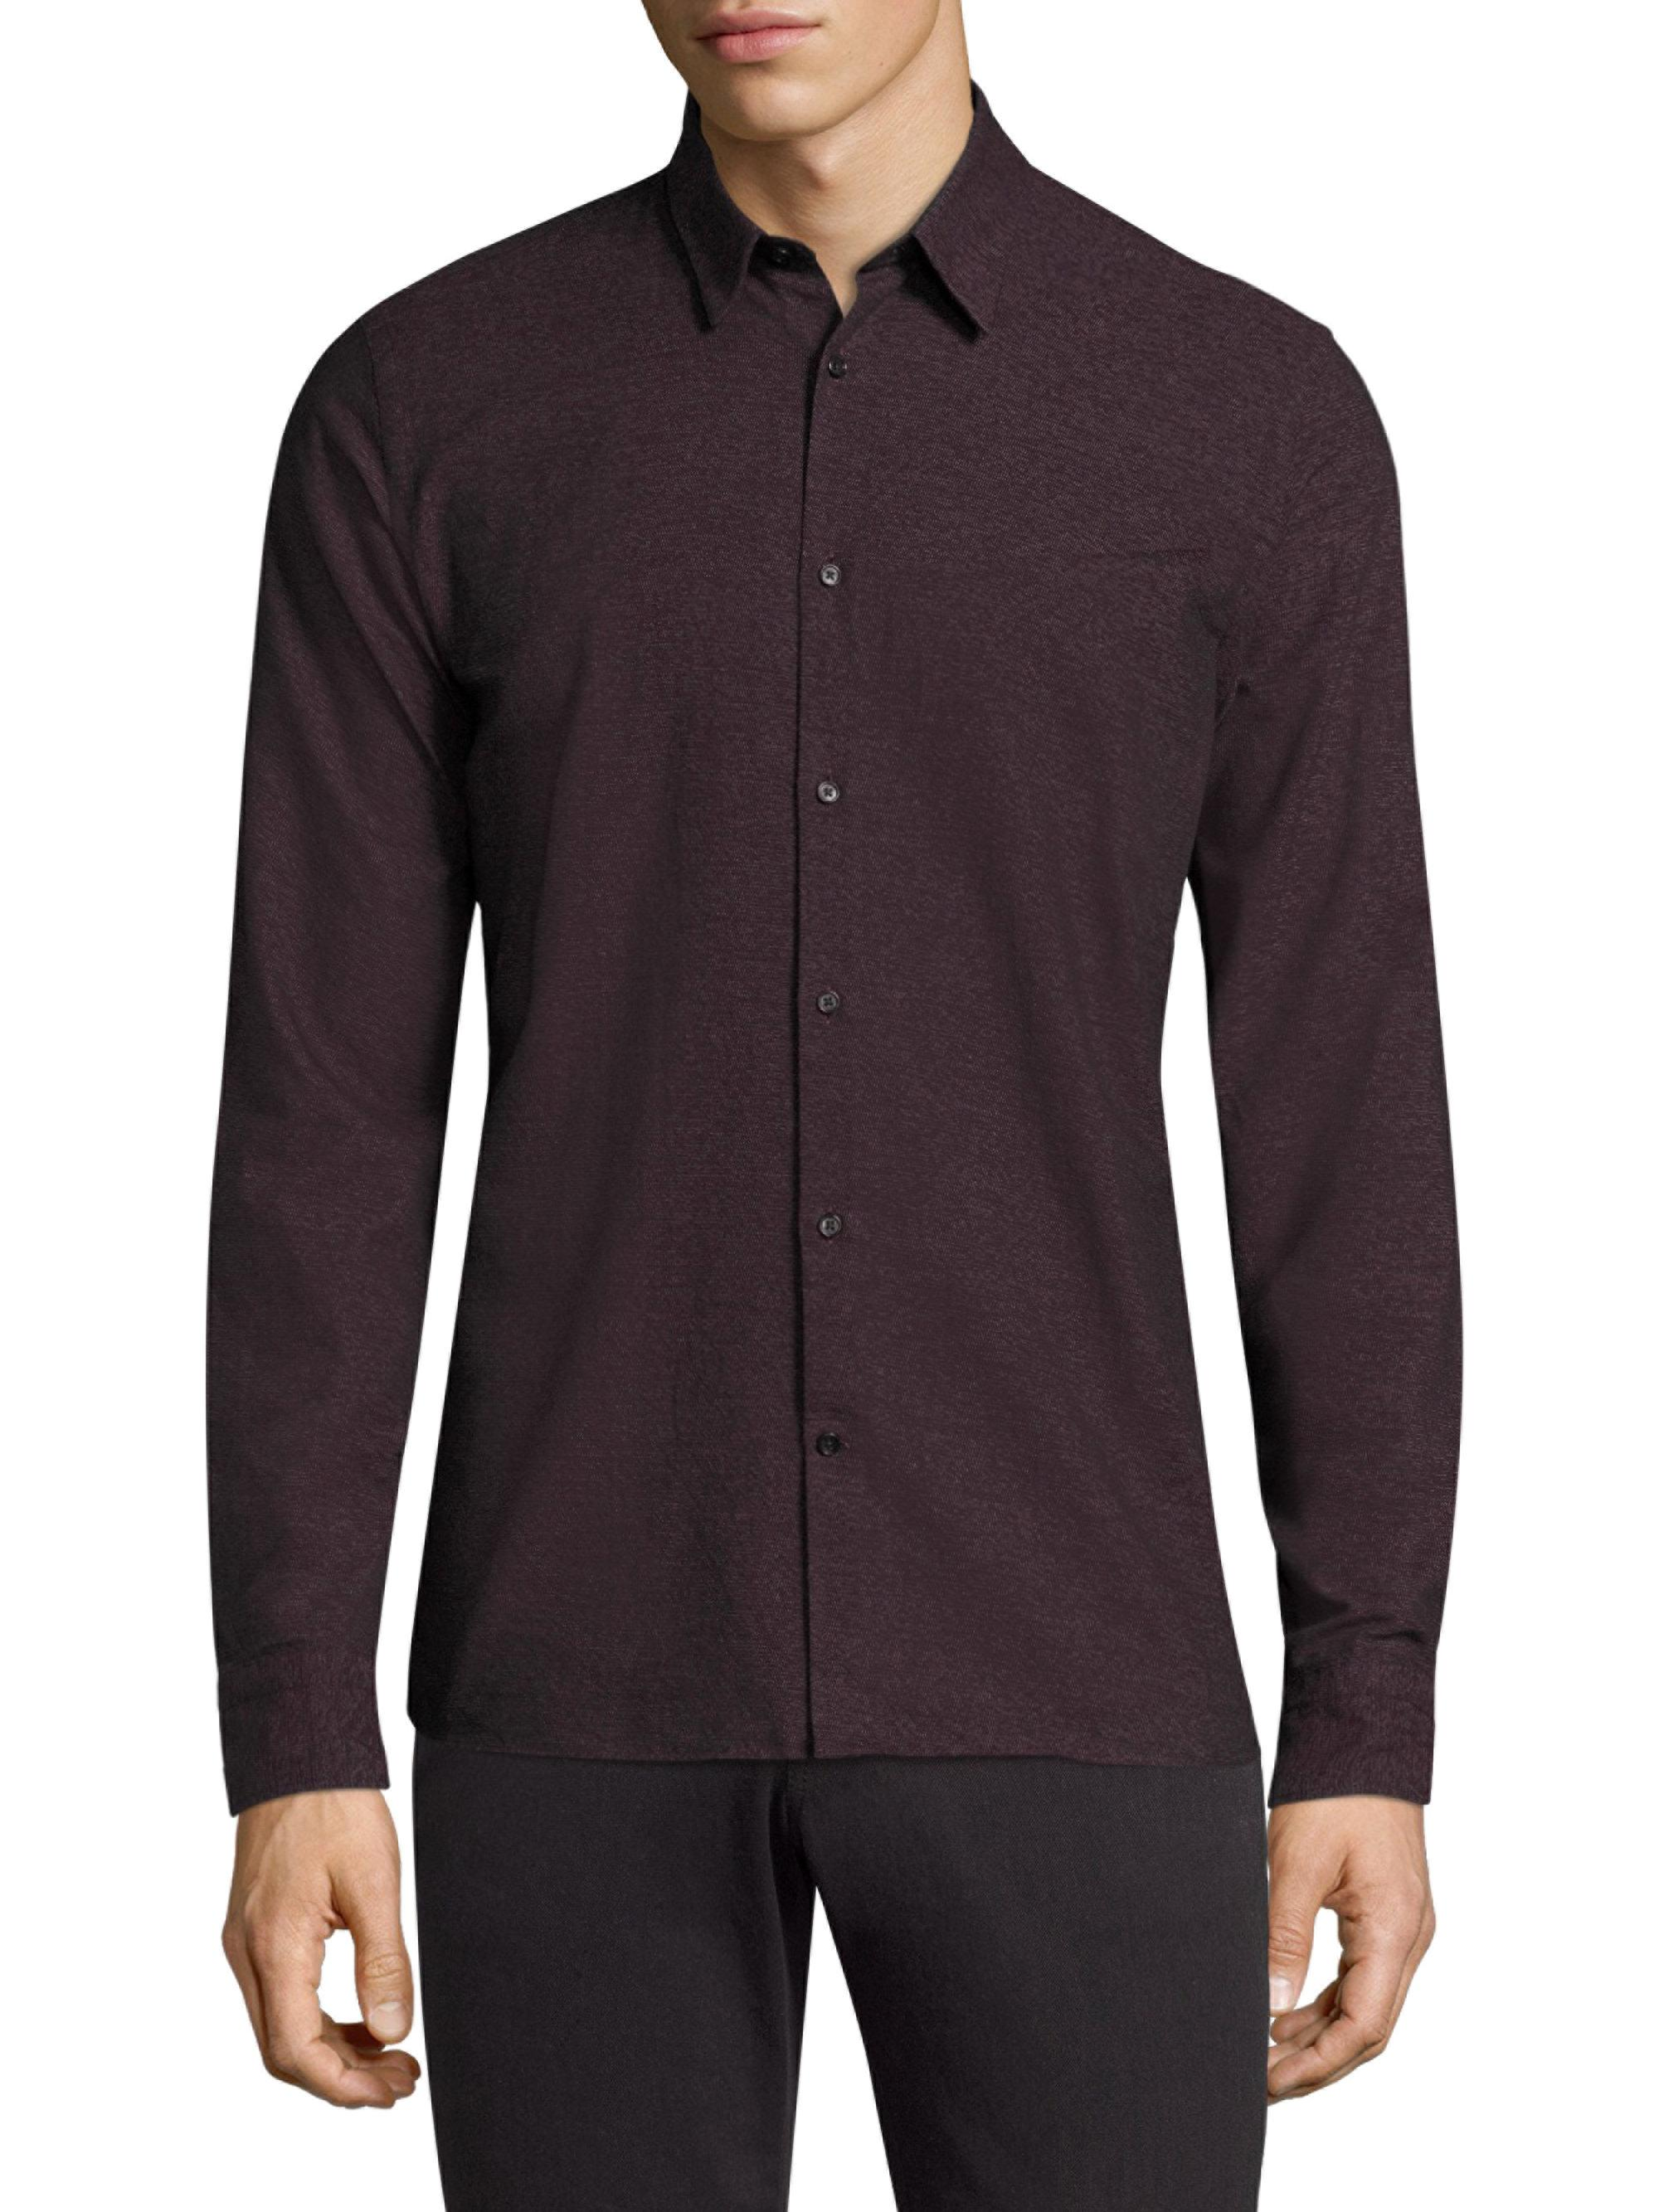 Lyst daniel slim fit button down cotton for Athletic fit button down shirts